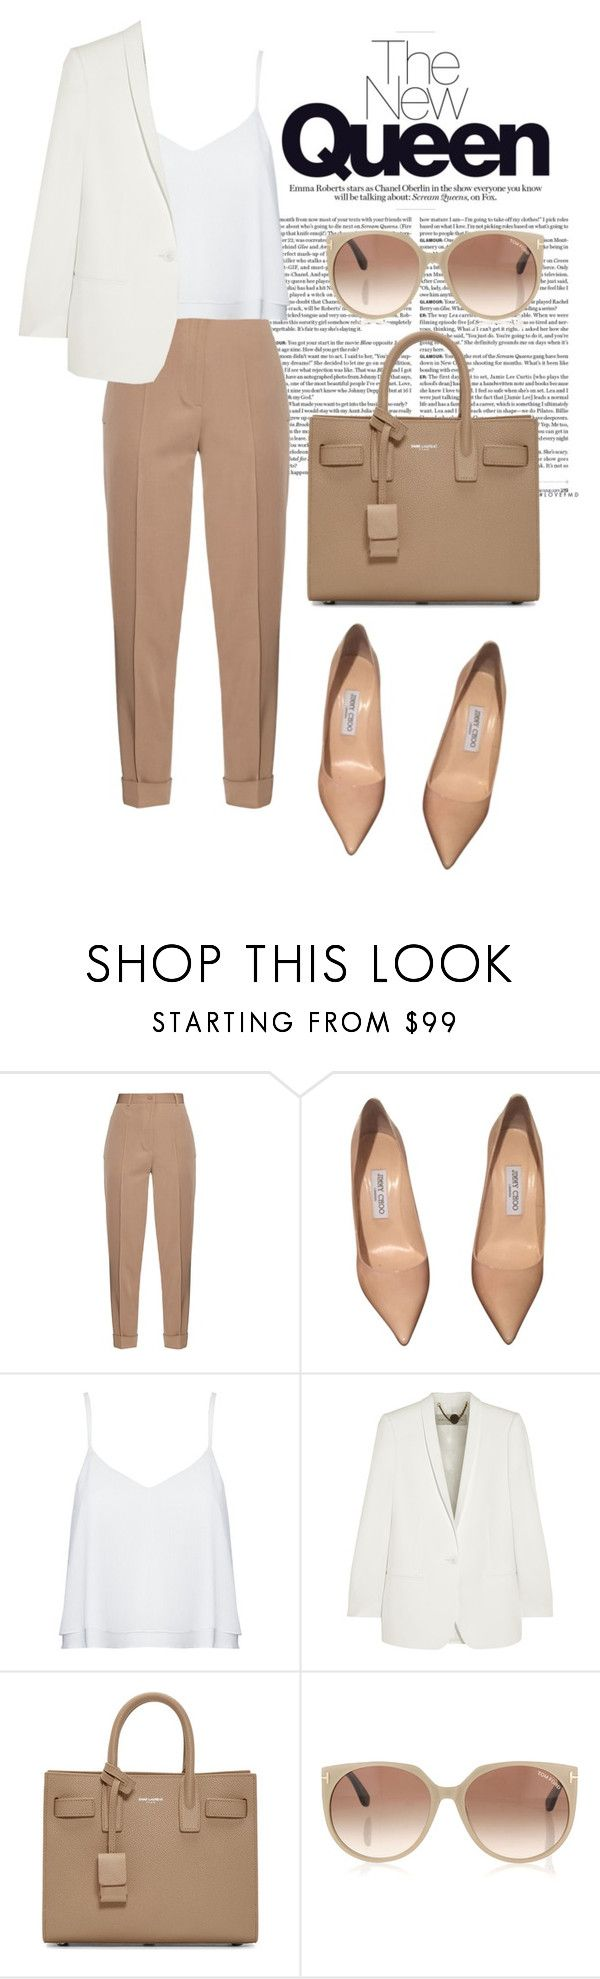 """Nude trends"" by neflaluna on Polyvore featuring Bottega Veneta, Jimmy Choo, Alice + Olivia, STELLA McCARTNEY, Yves Saint Laurent, Tom Ford, women's clothing, women's fashion, women and female"